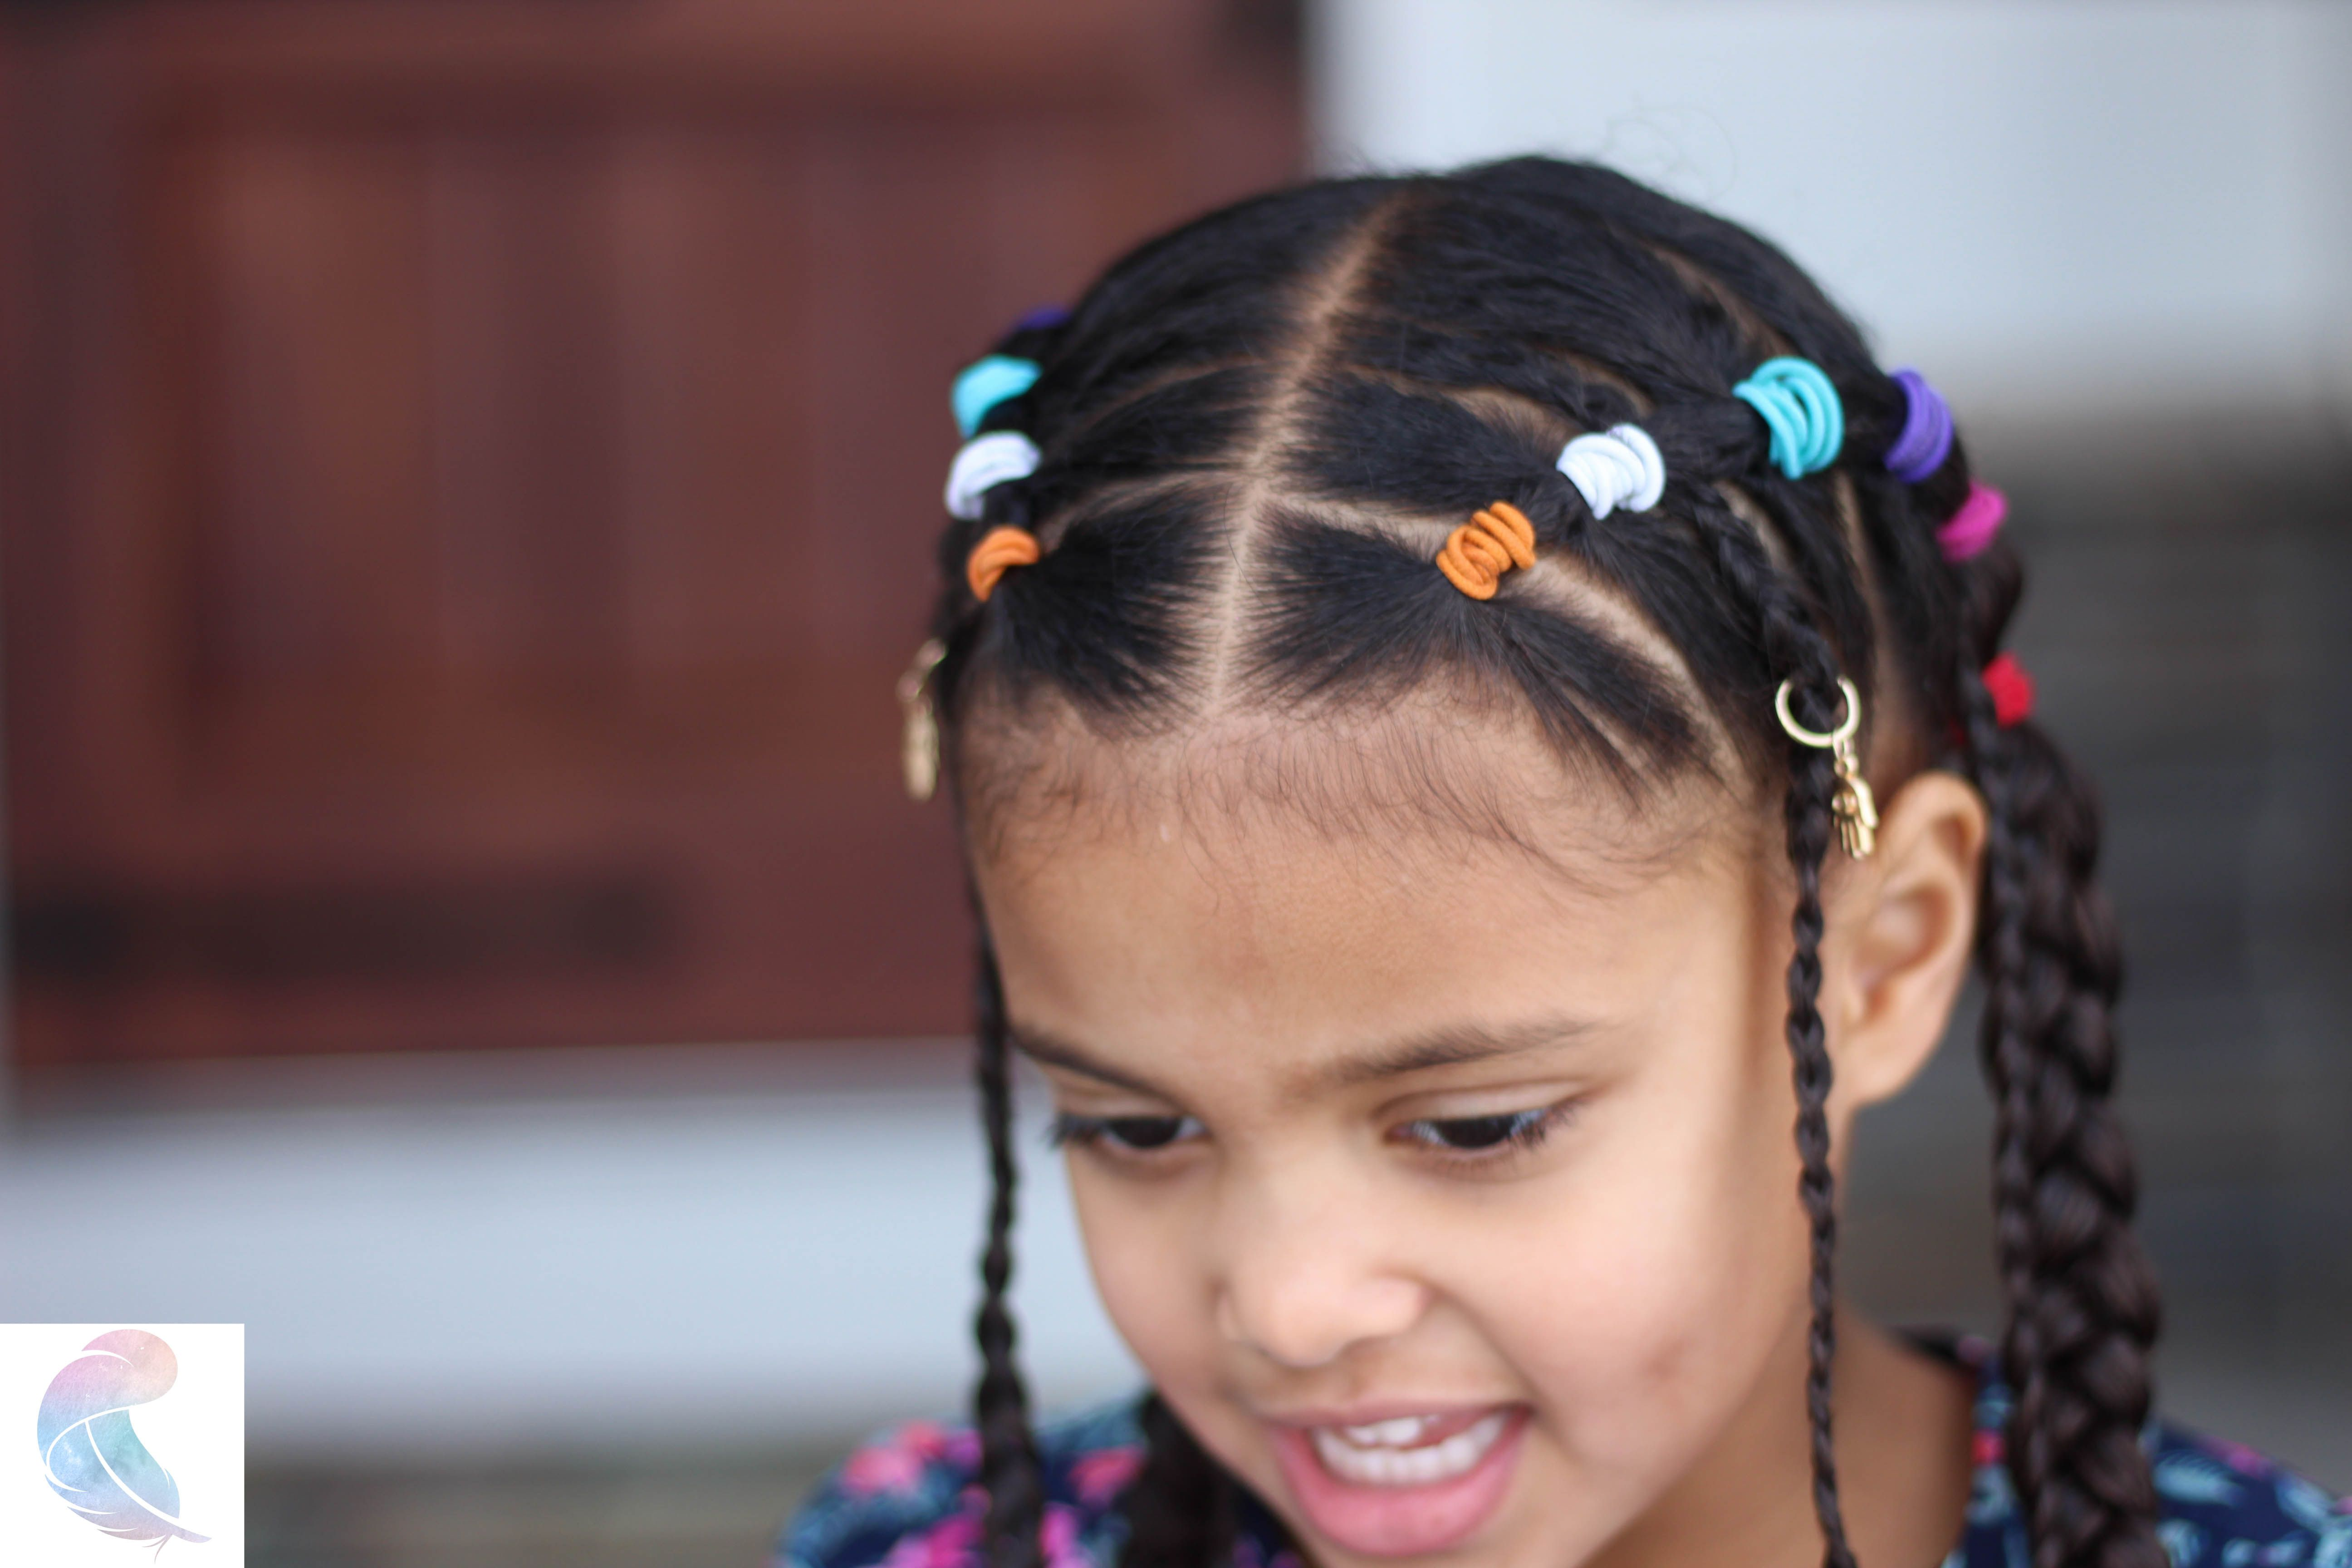 Curly Hair On Instagram Baby Feverrrrr She Is Adorable Curly Barb In 2020 Baby Girl Hairstyles Curly Lil Girl Hairstyles Kids Hairstyles Girls